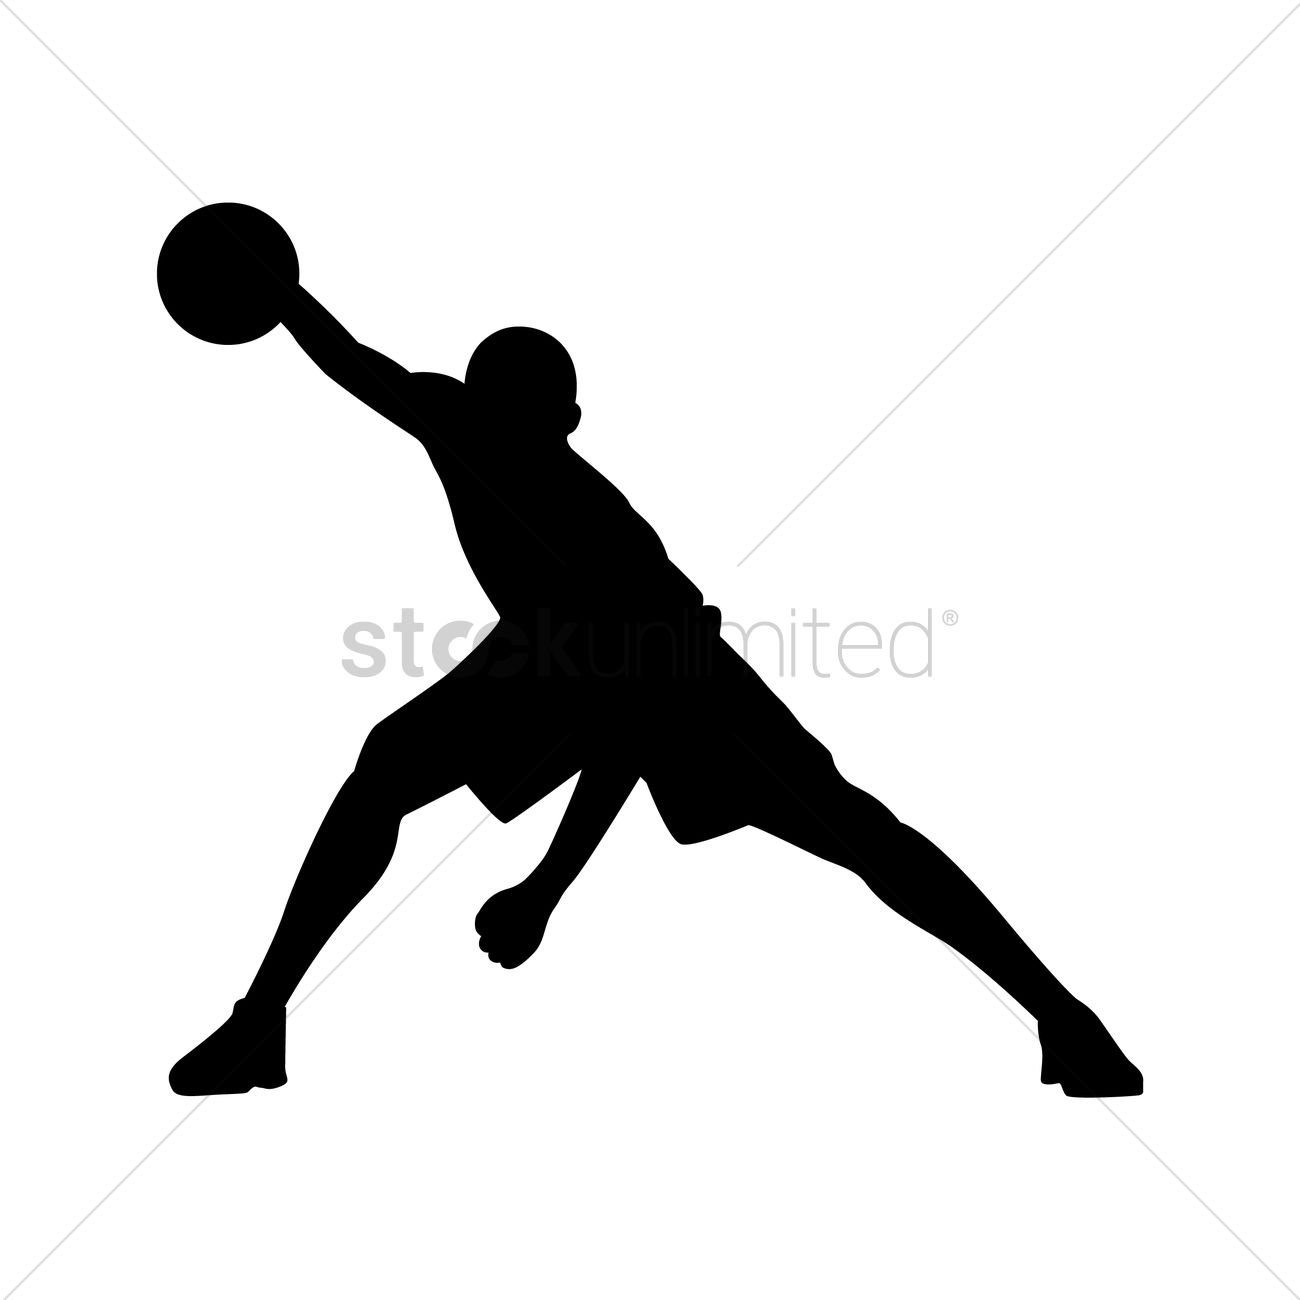 basketball player in action vector image 1414026 free basketball clipart downloads free basketball clipart downloads